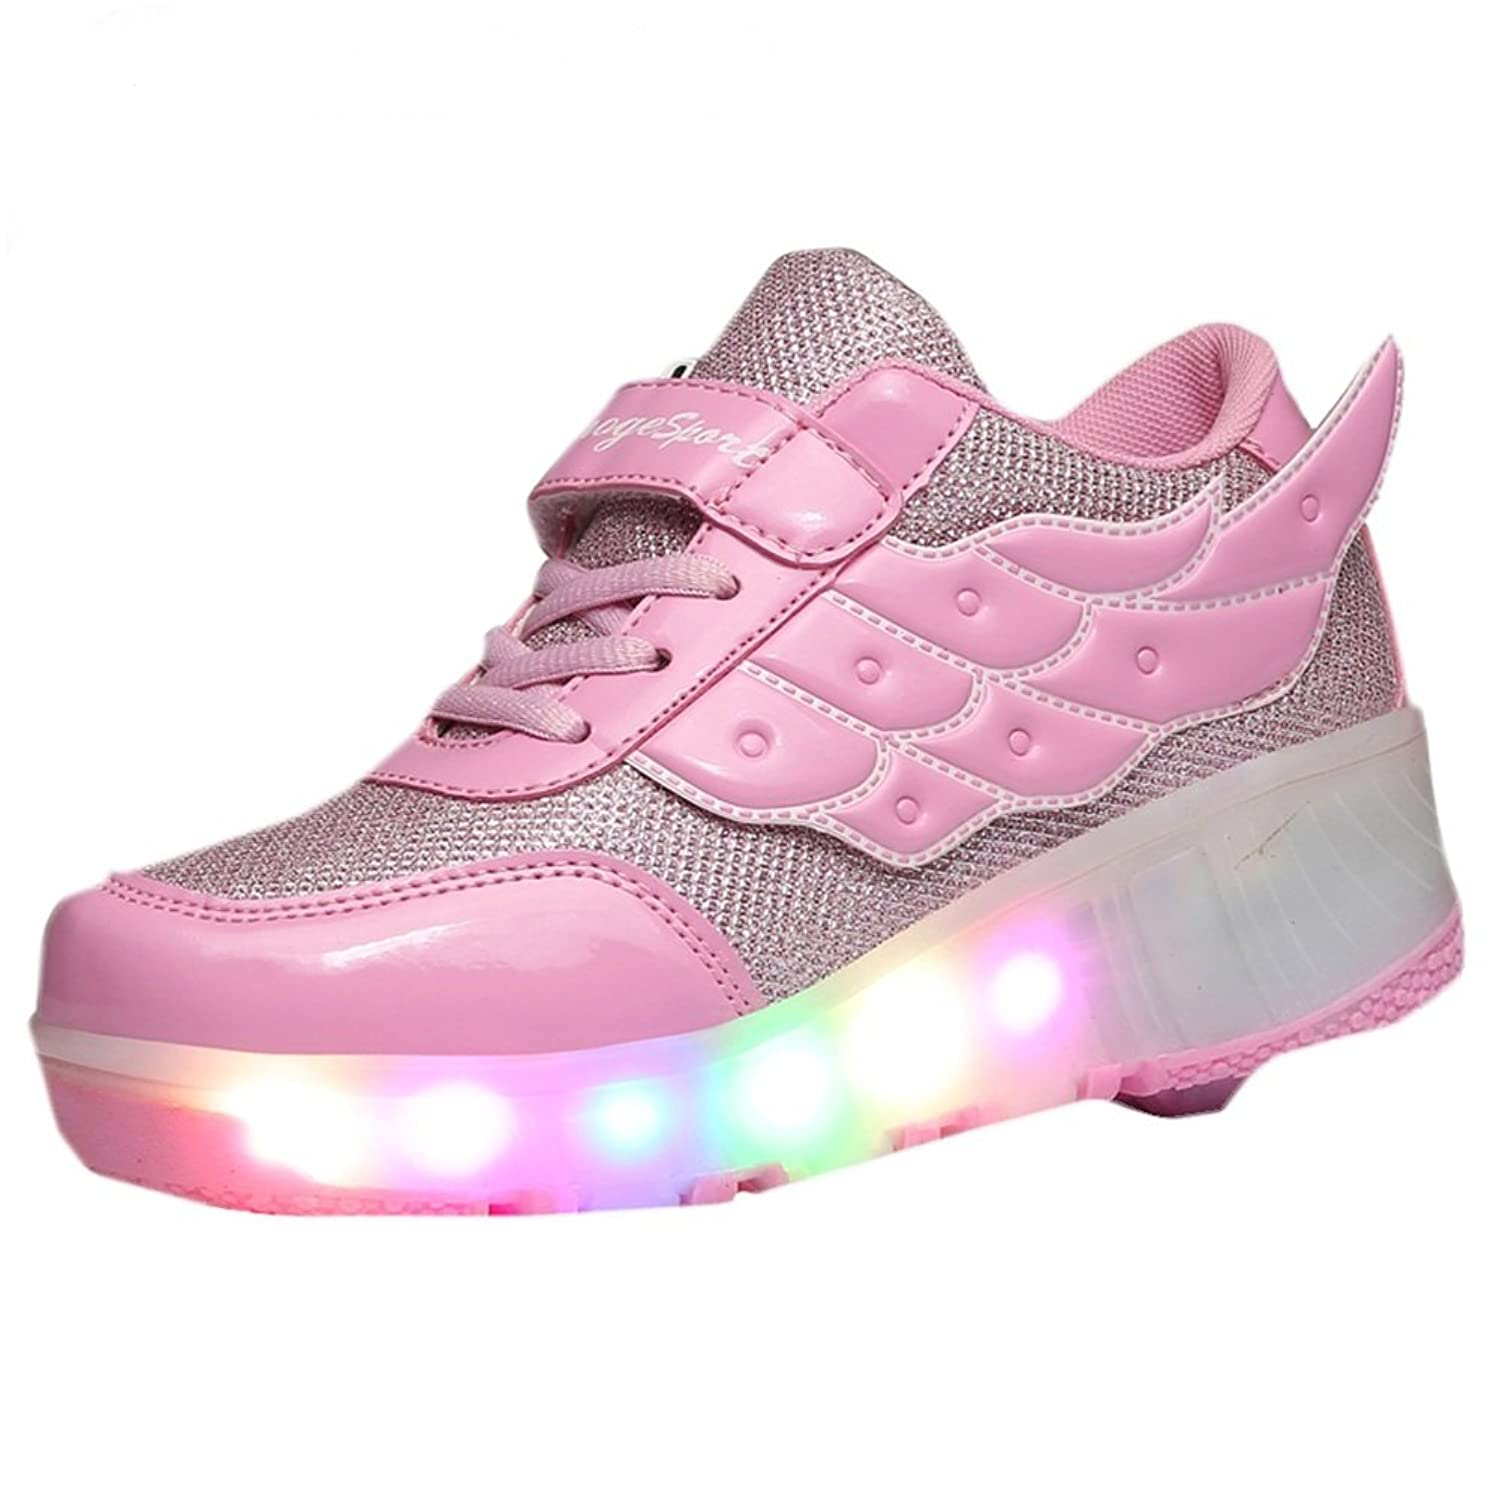 Nsasy YCOMI Girl\u0027s Boy\u0027s LED Roller Shoes With Wheels Roller Skate Sneakers  LED Roller Sneaker